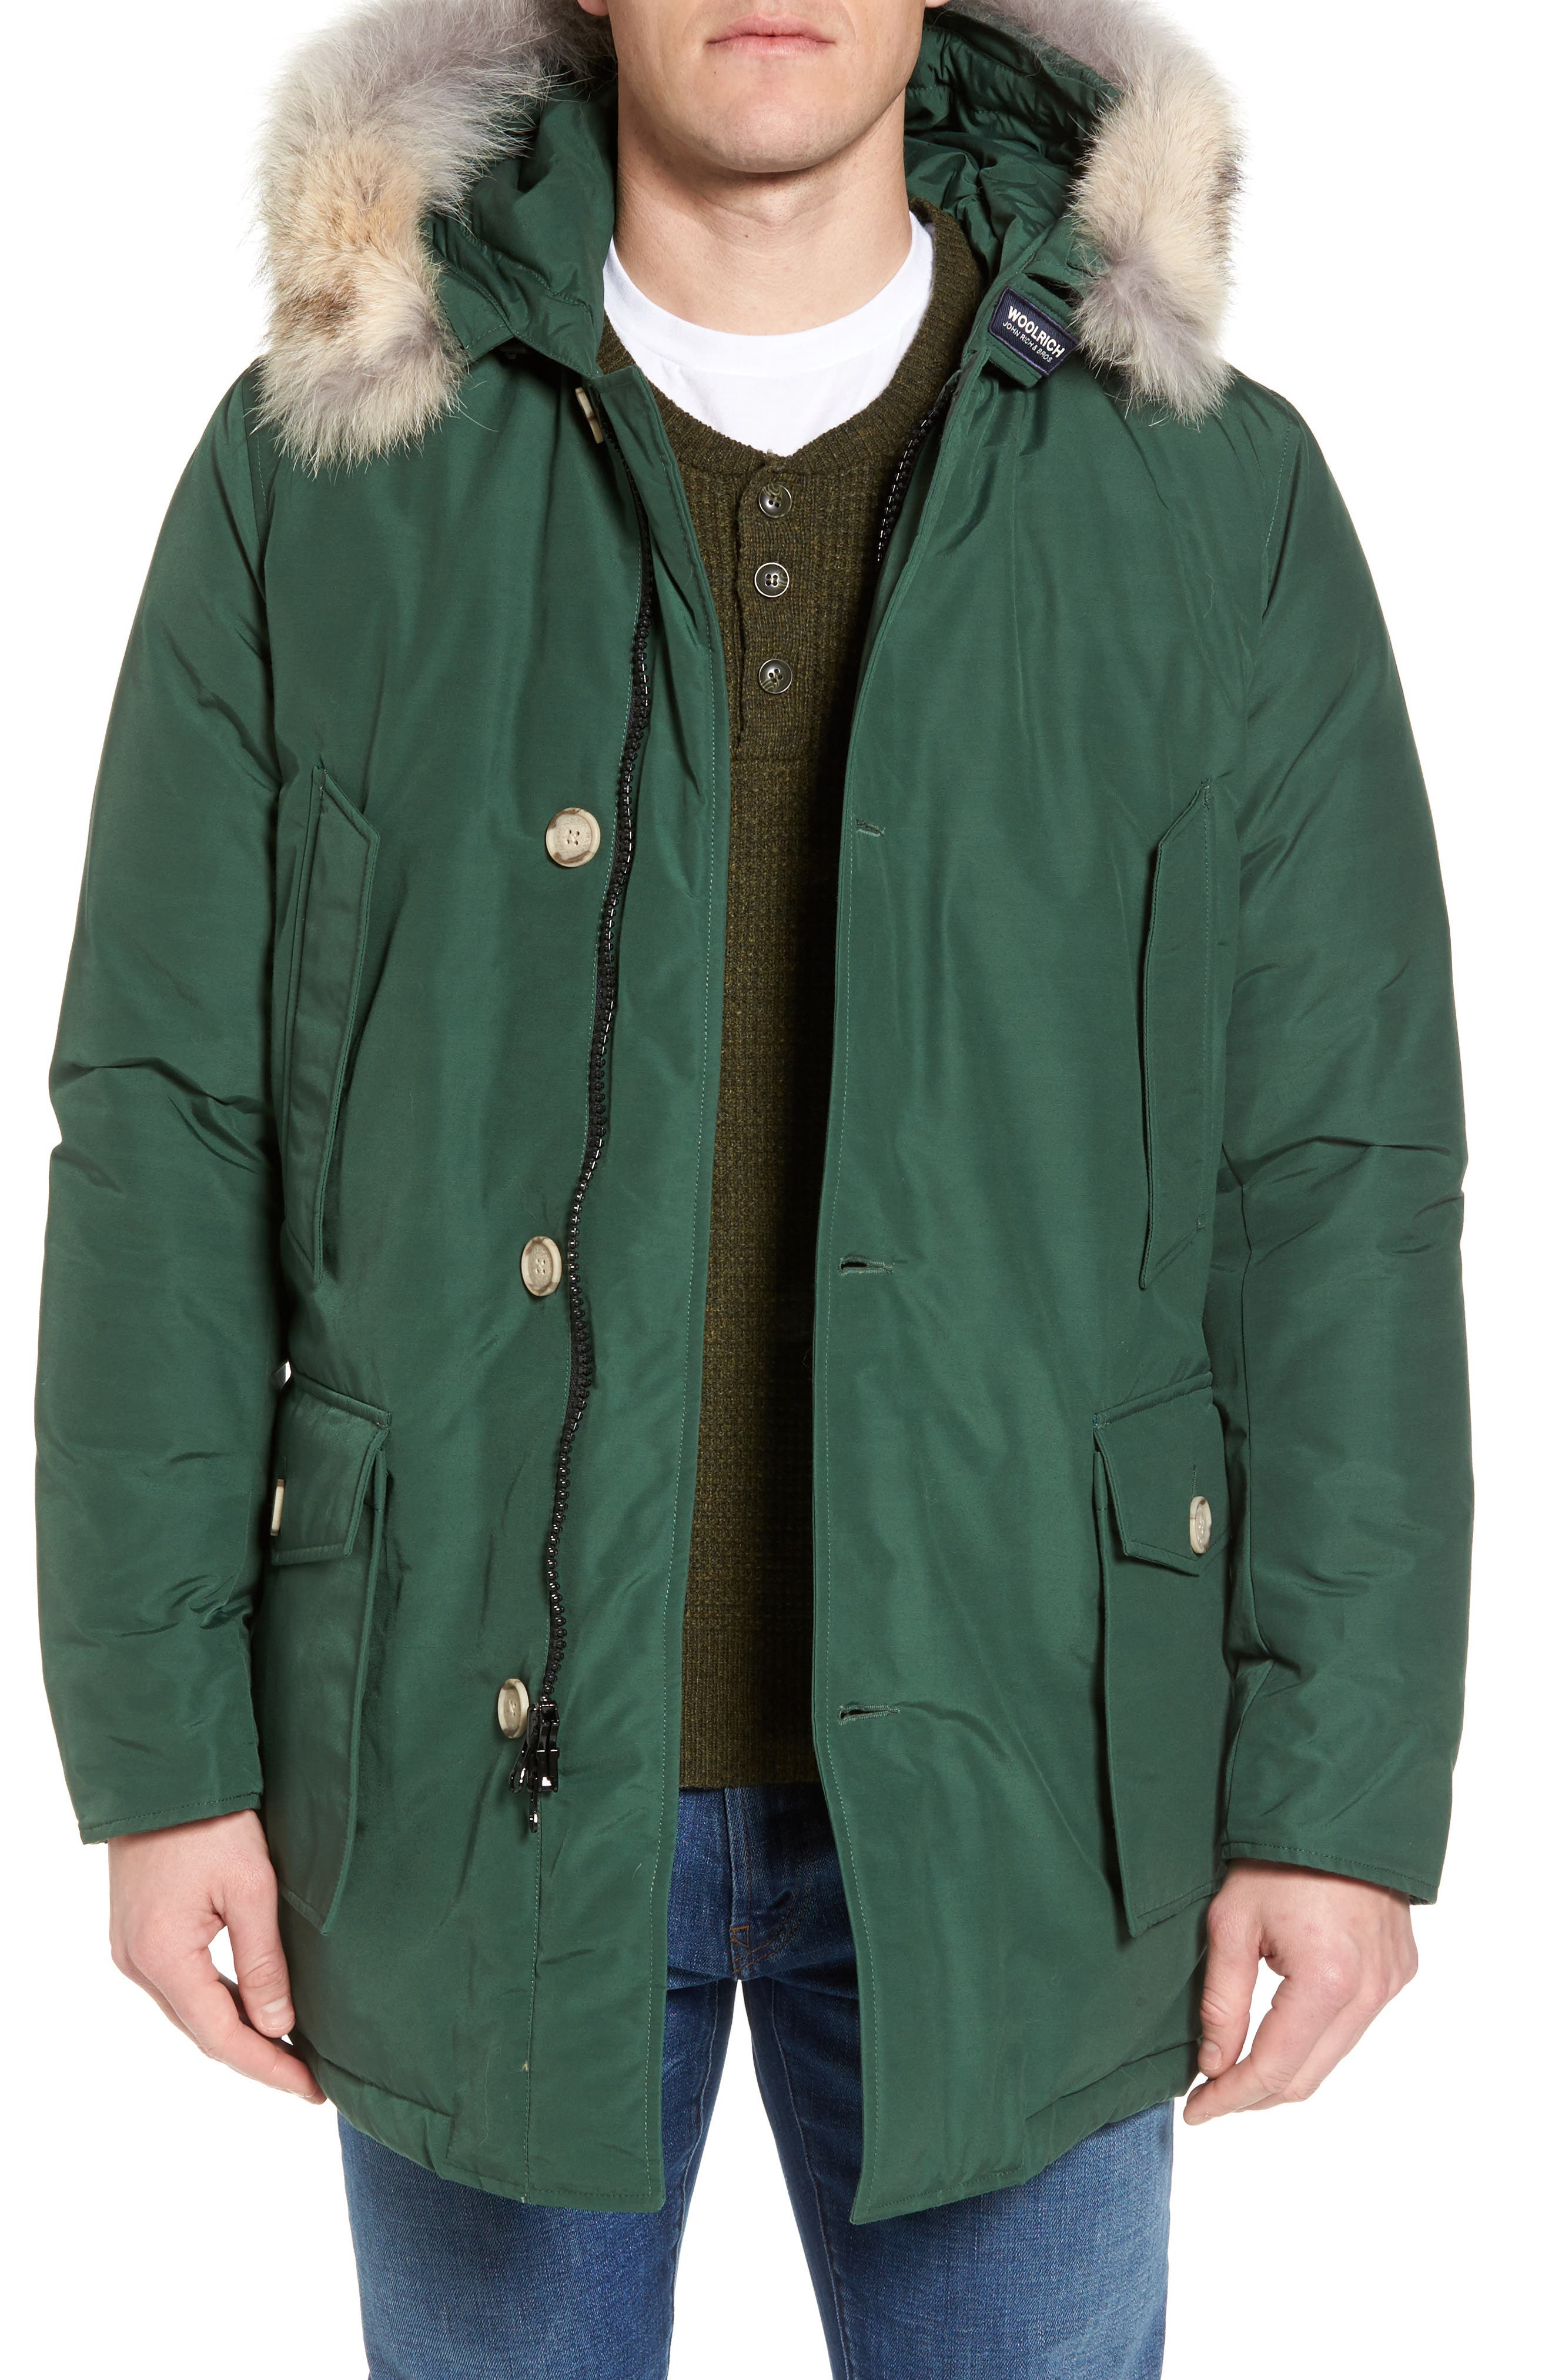 John Rich & Bros. Arctic Parka with Genuine Coyote Fur Trim,                             Main thumbnail 1, color,